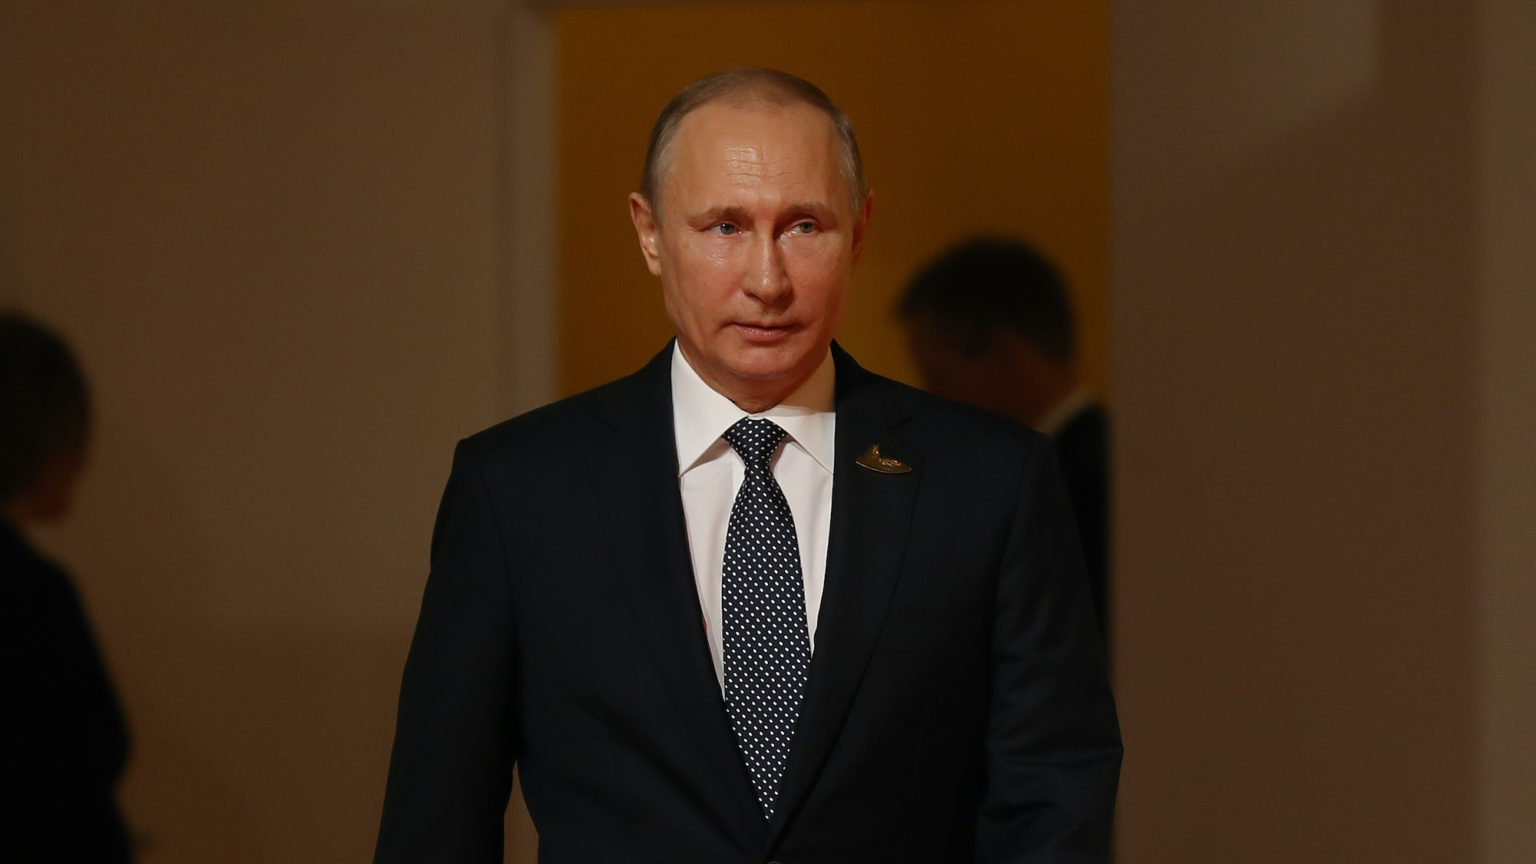 Is this the first glimpse of a post-Putin future?